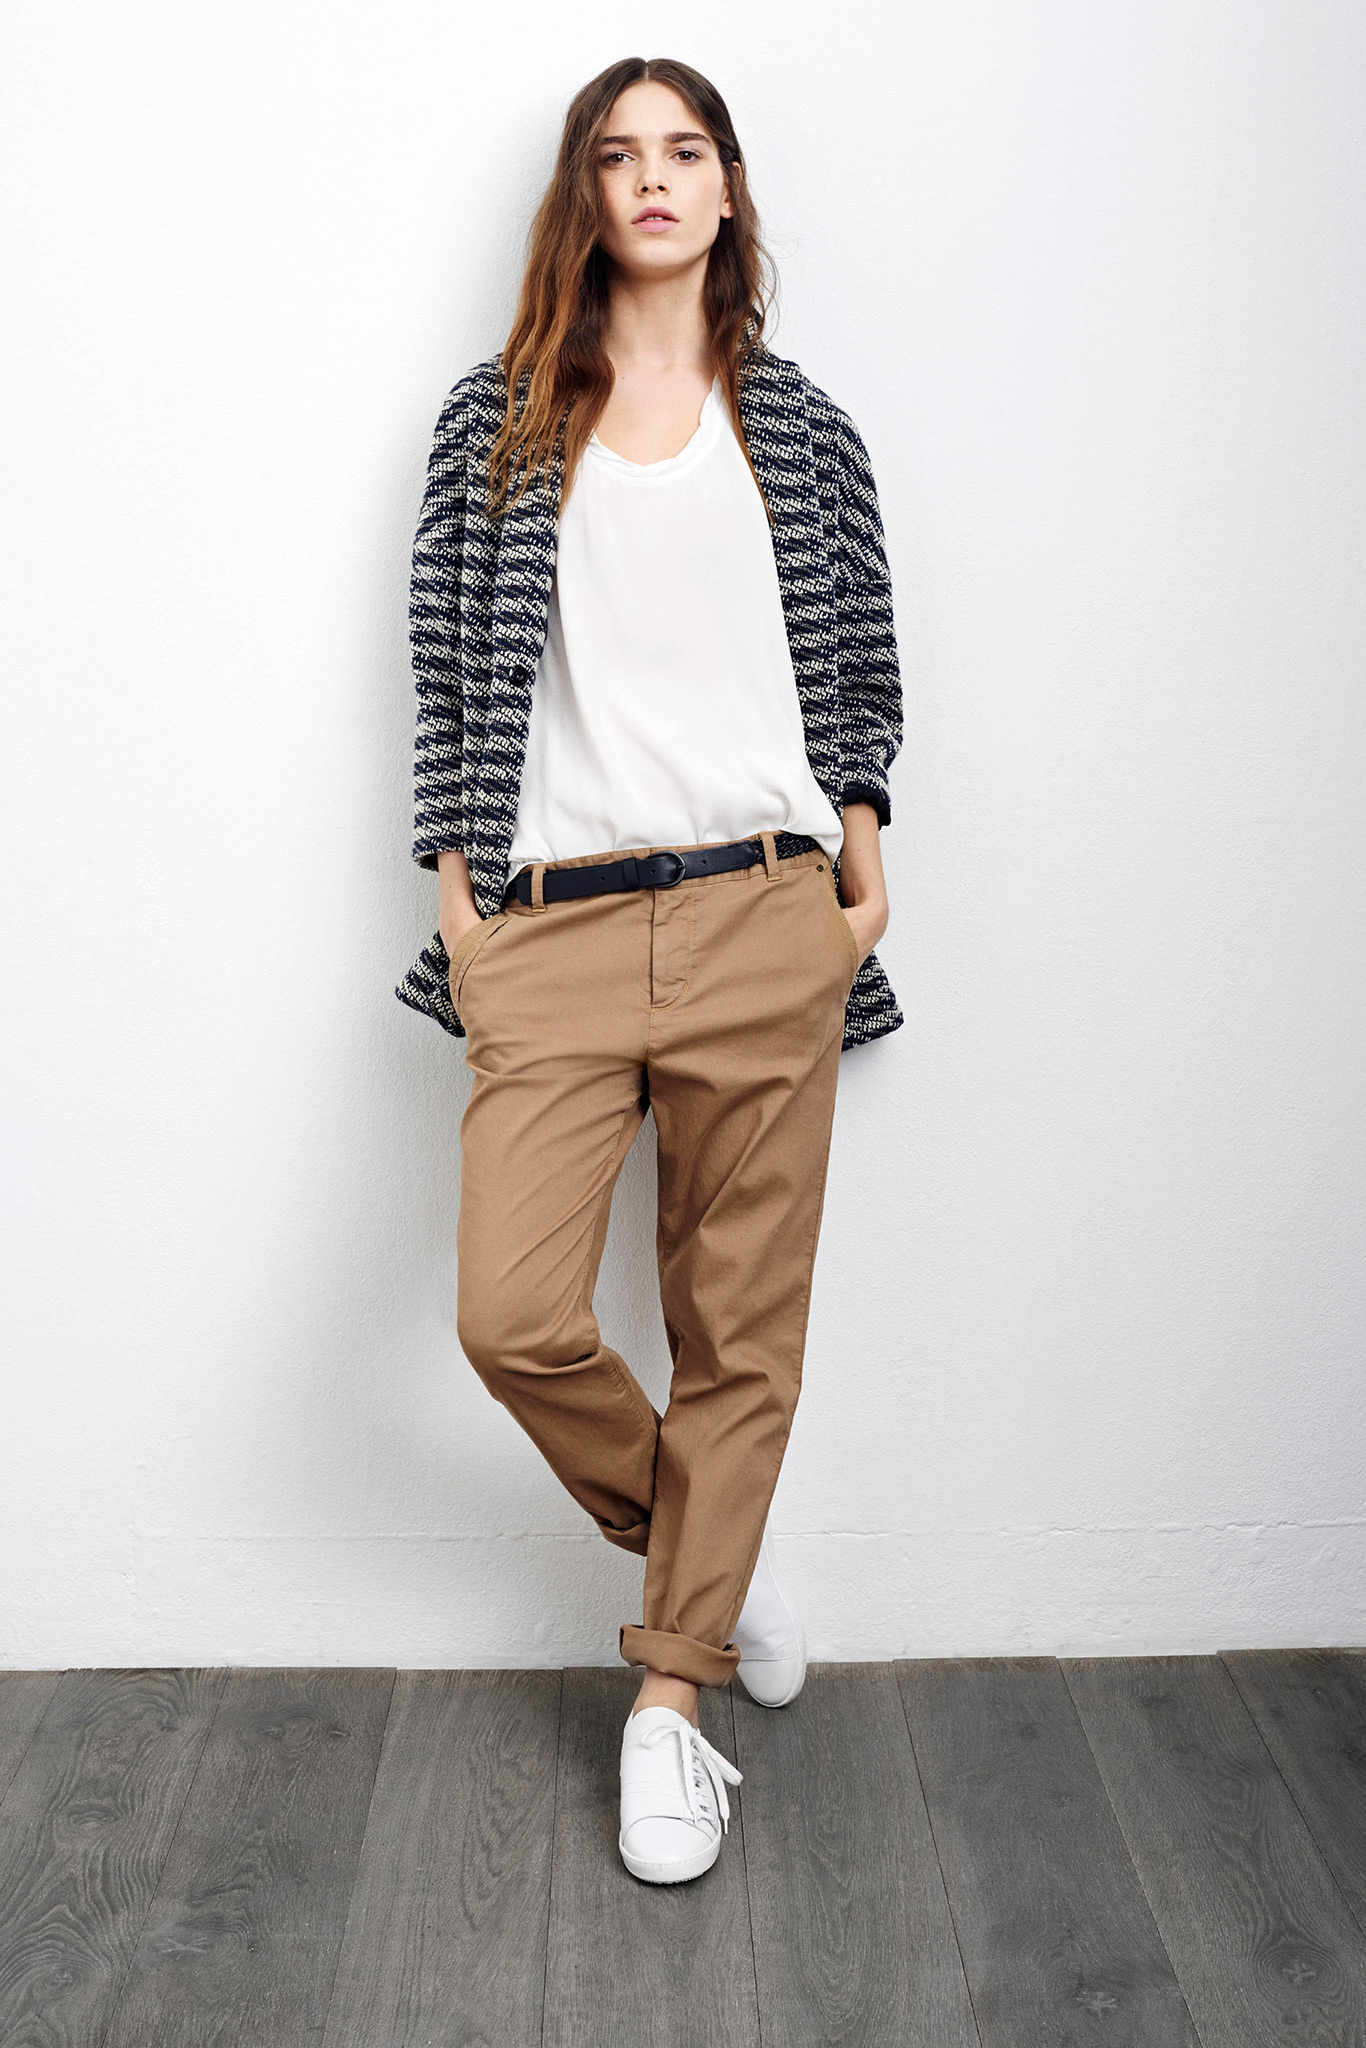 Comptoir des cotonniers fall winter 2015 percy mode - Www comptoir des cotonniers ...